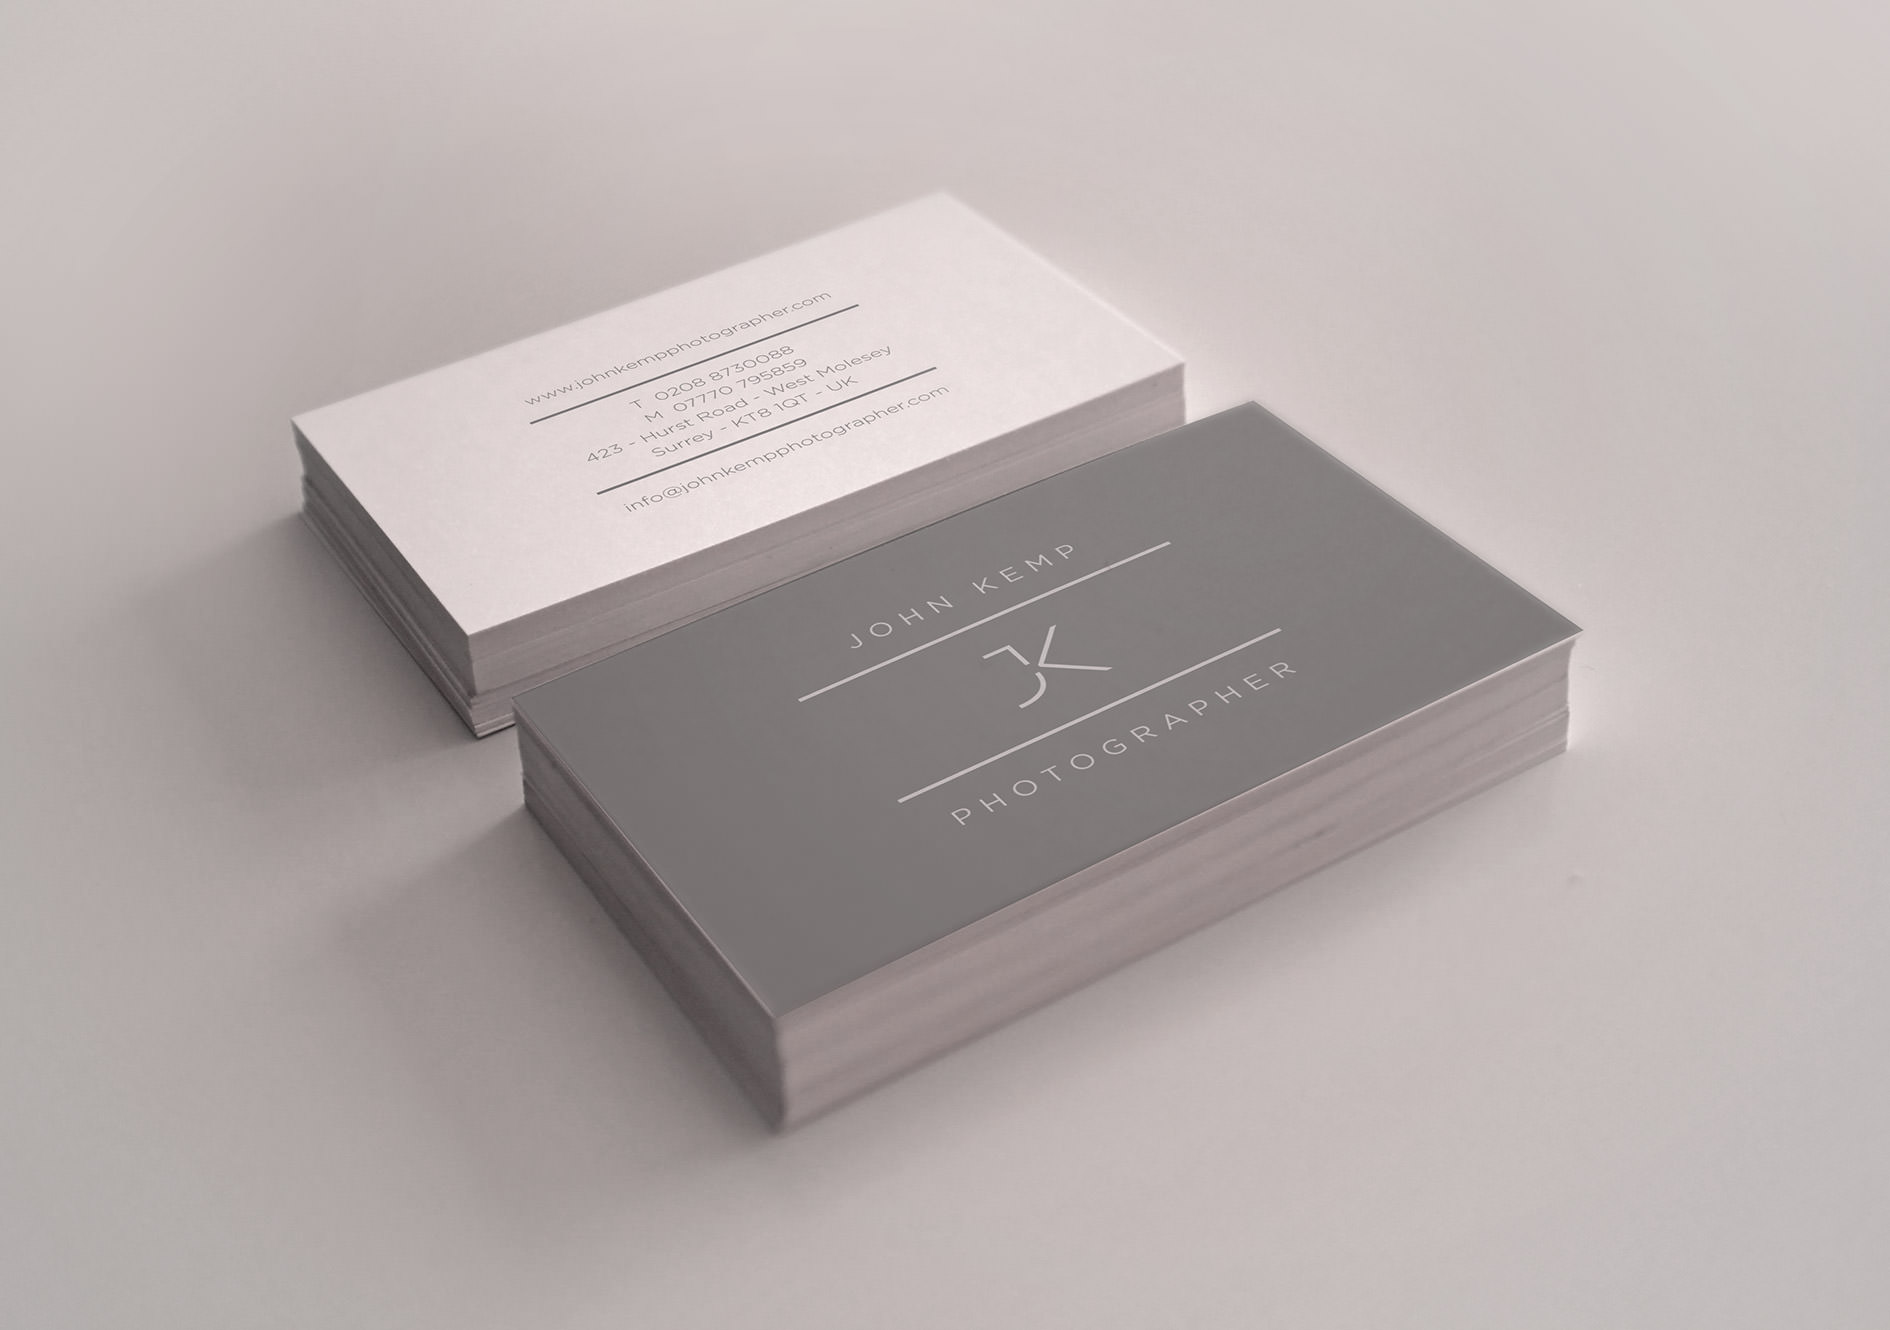 The John Kemp Business Card design – Tribus Creative, brand identity design for SMEs